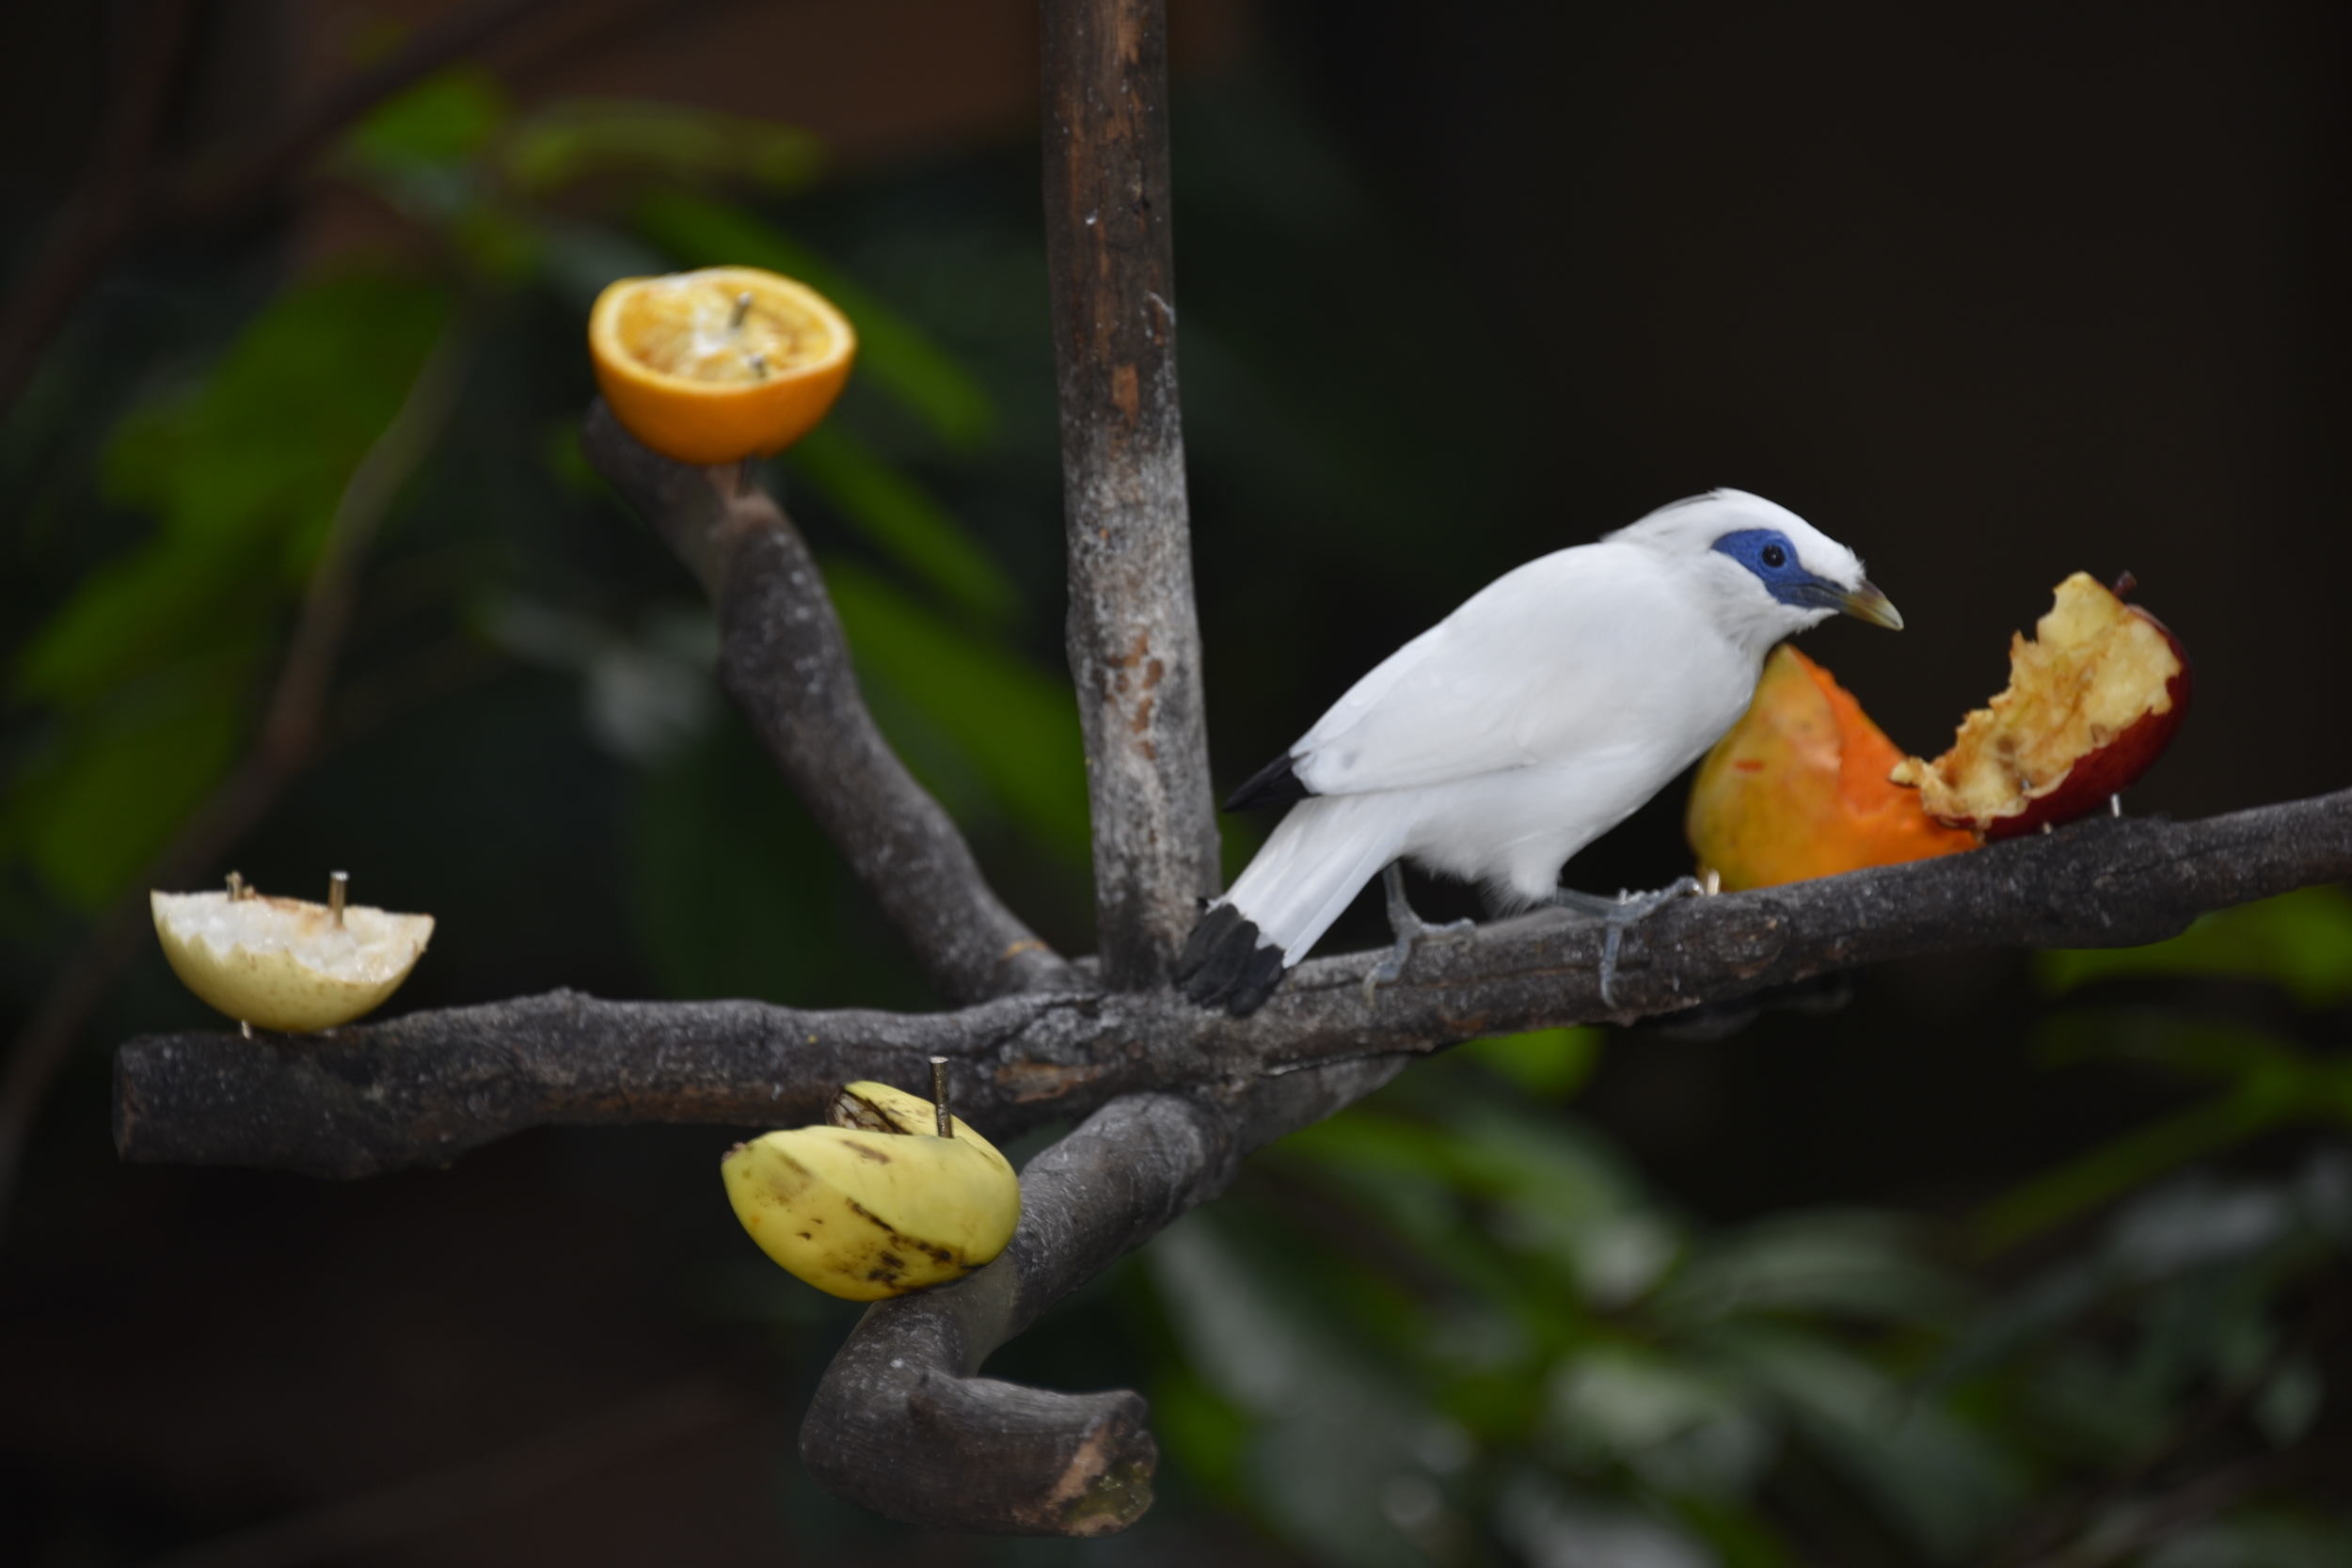 A bird nibbles on some treats in Hong Kong Park aviary.